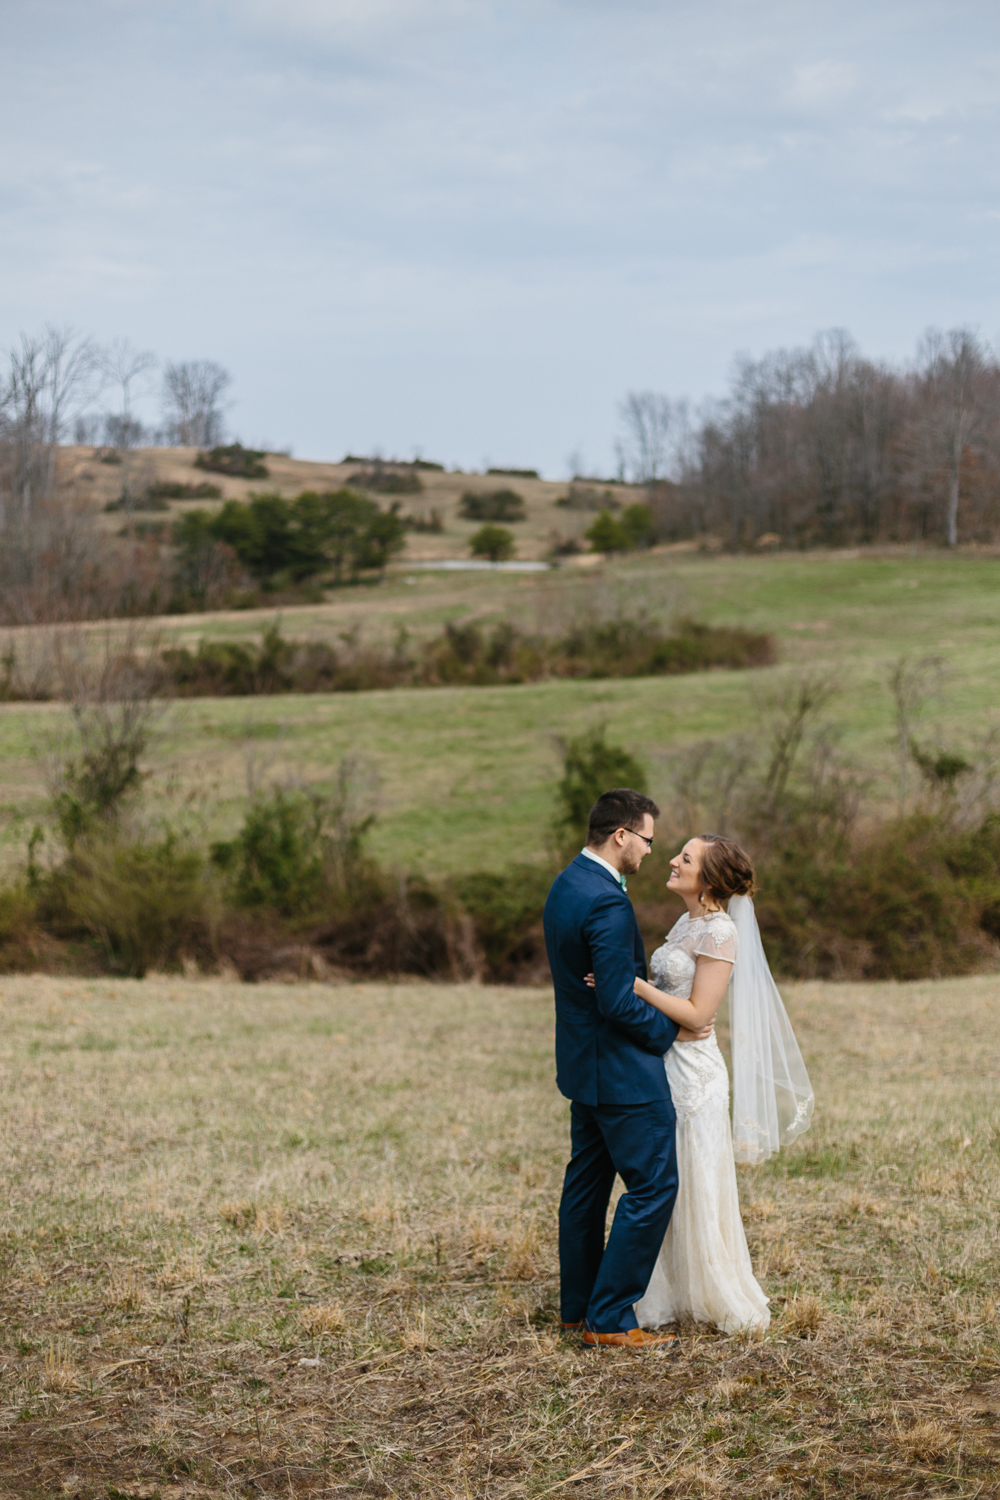 Fun, Happy Spring Wedding by Corrie Mick Photography-51.jpg